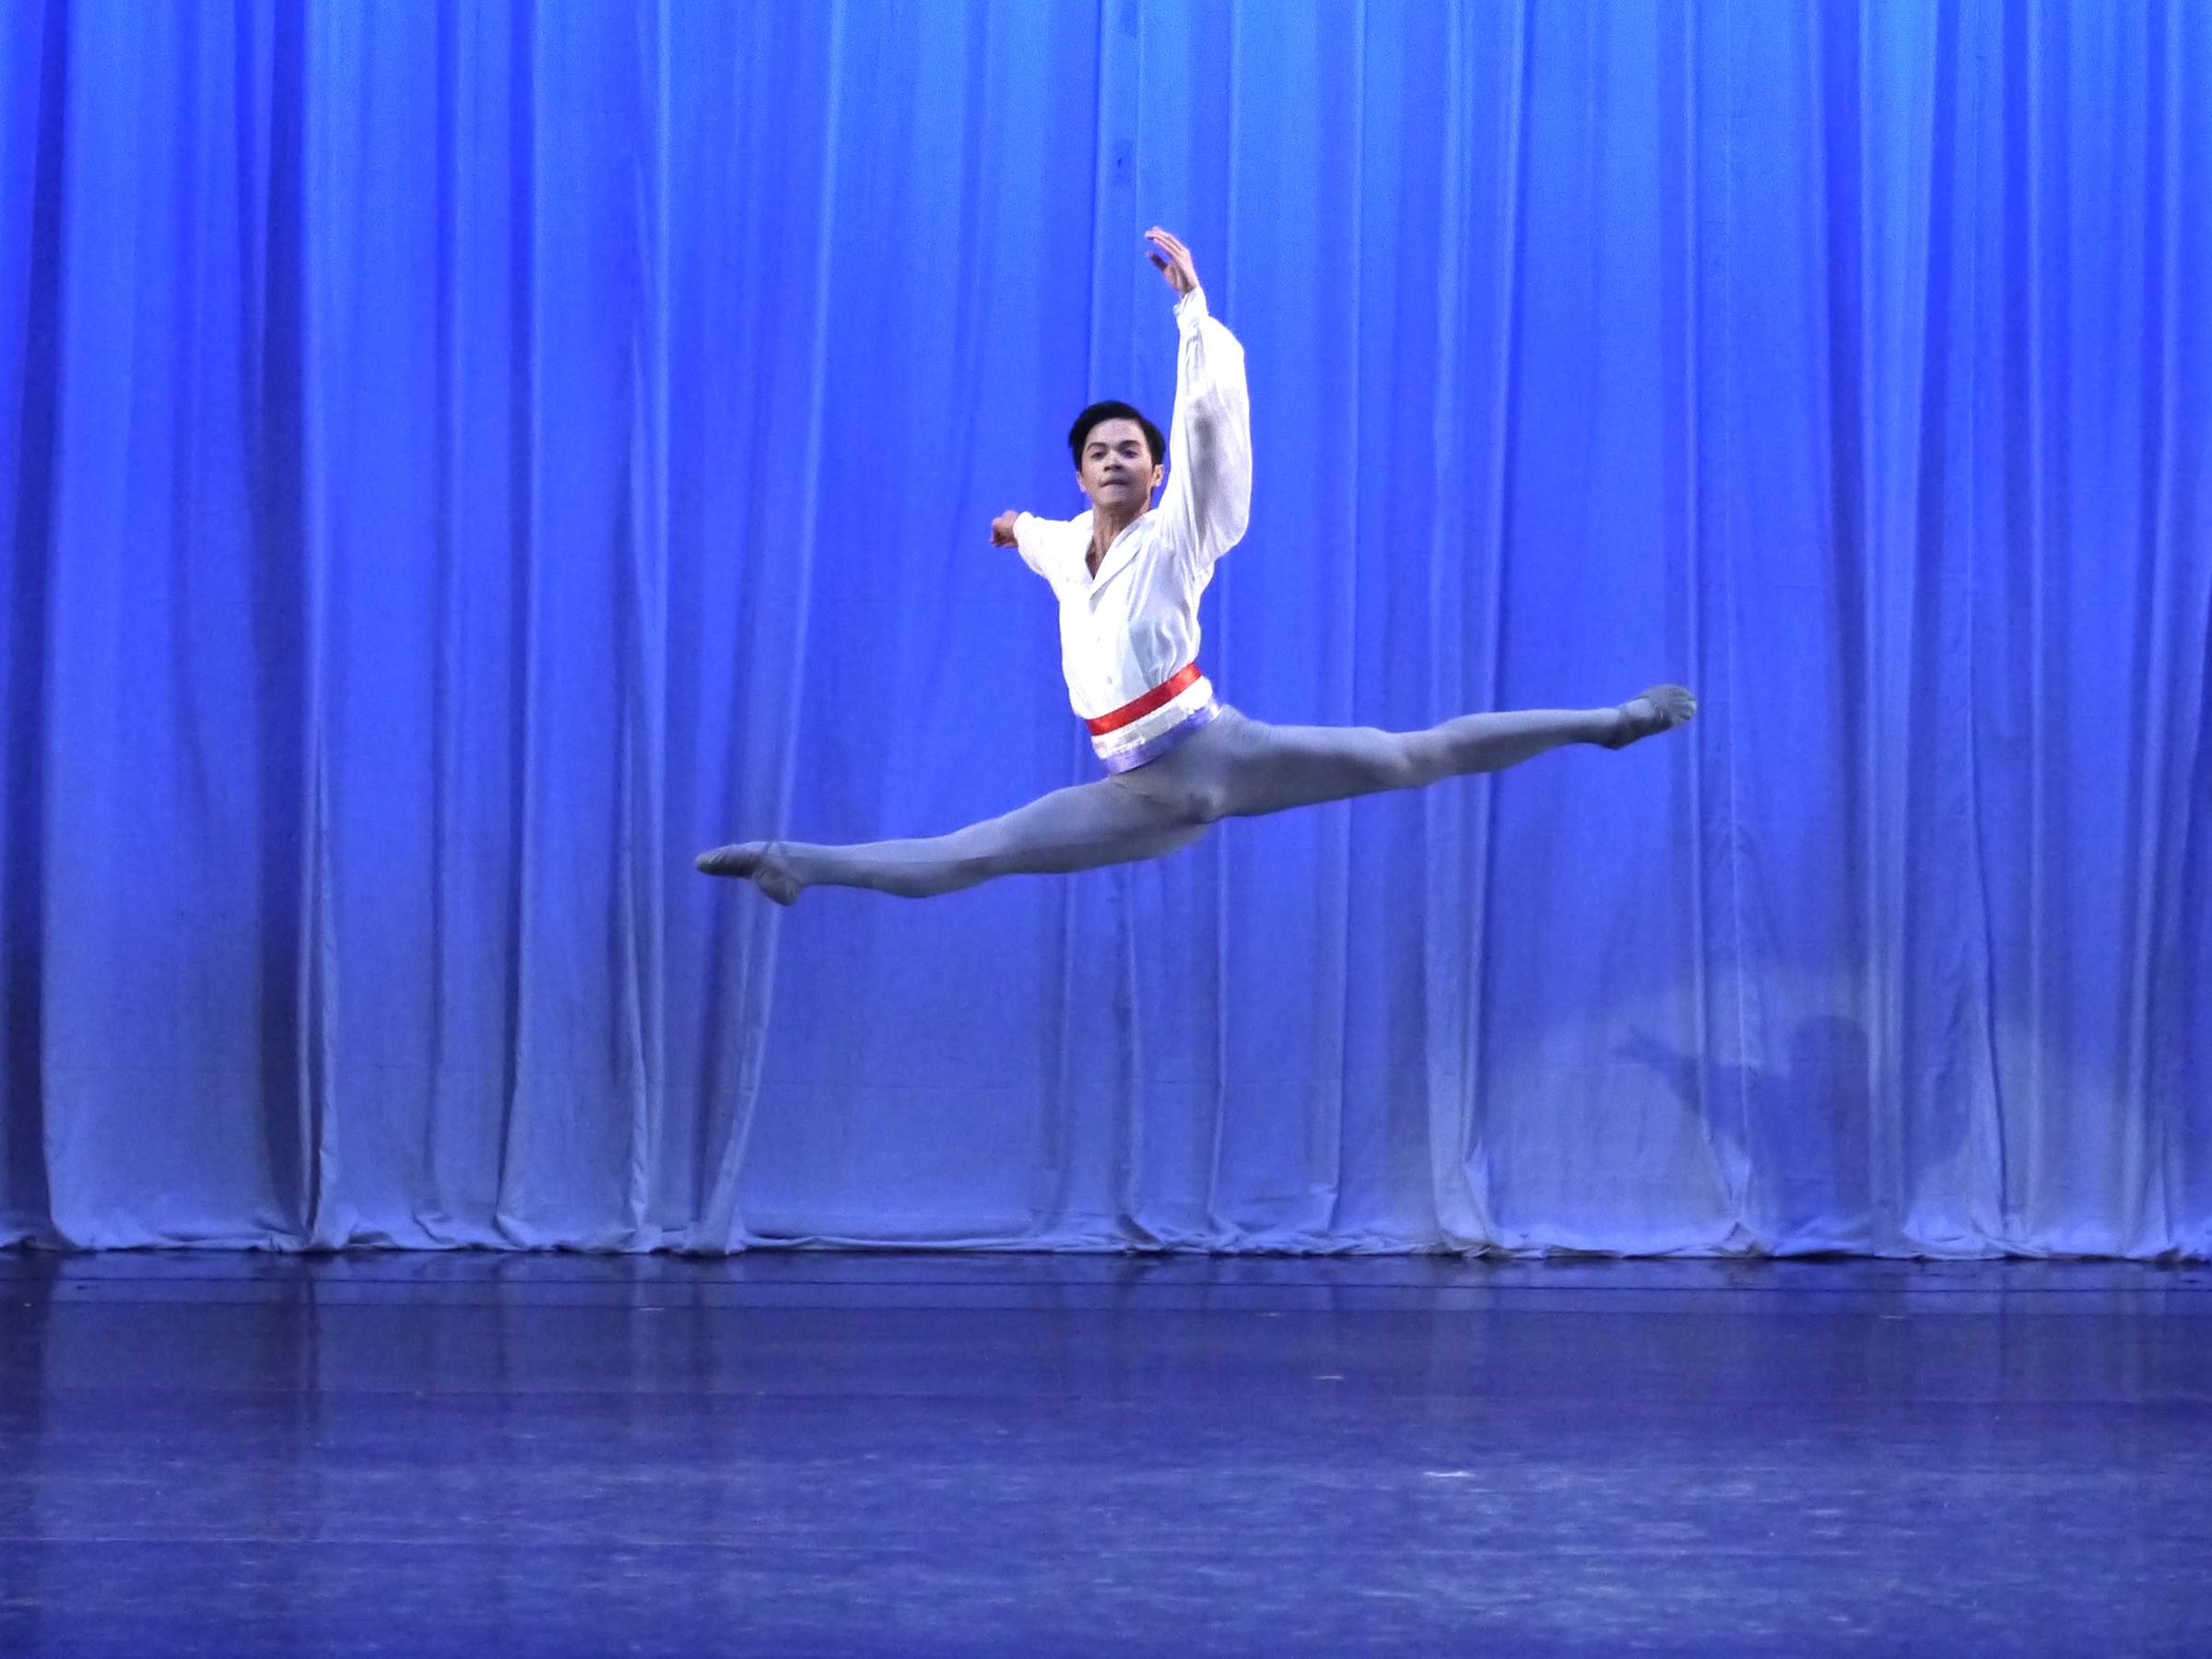 Rafael Perez performs in  Flames of Paris  in  Deux .